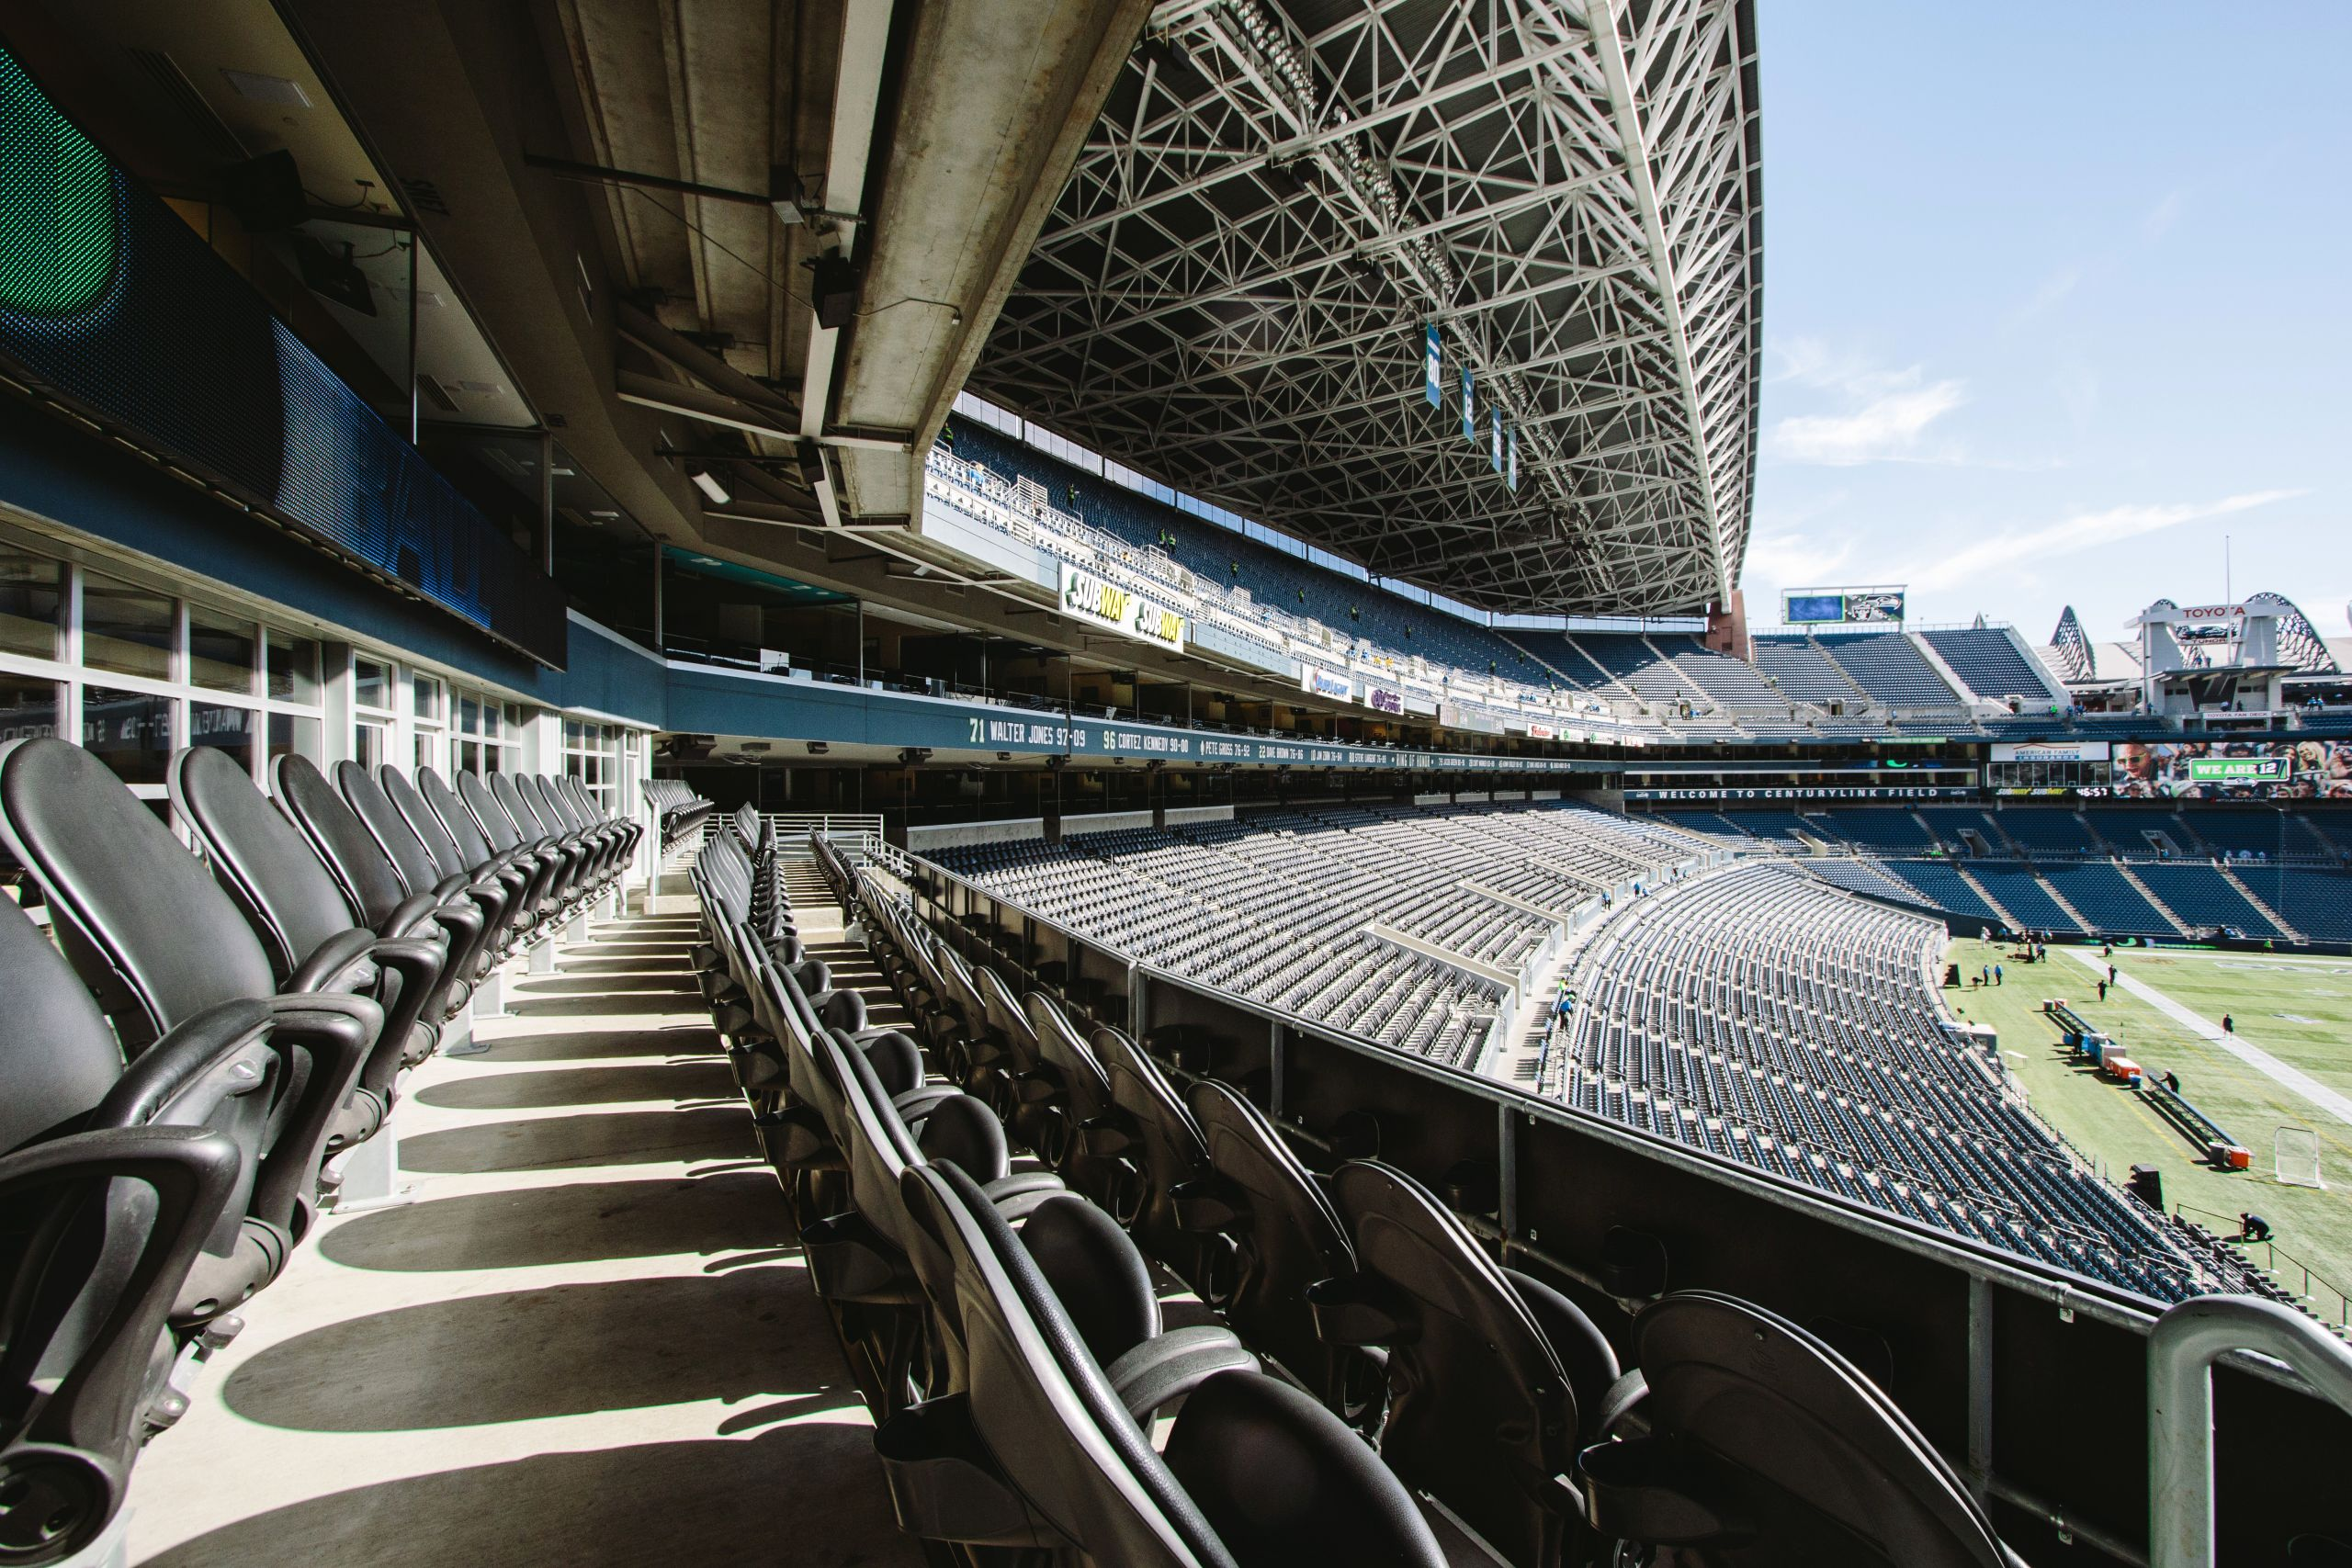 Seahawks Stadium Seat View Inspirational Brotherton Reserve Club